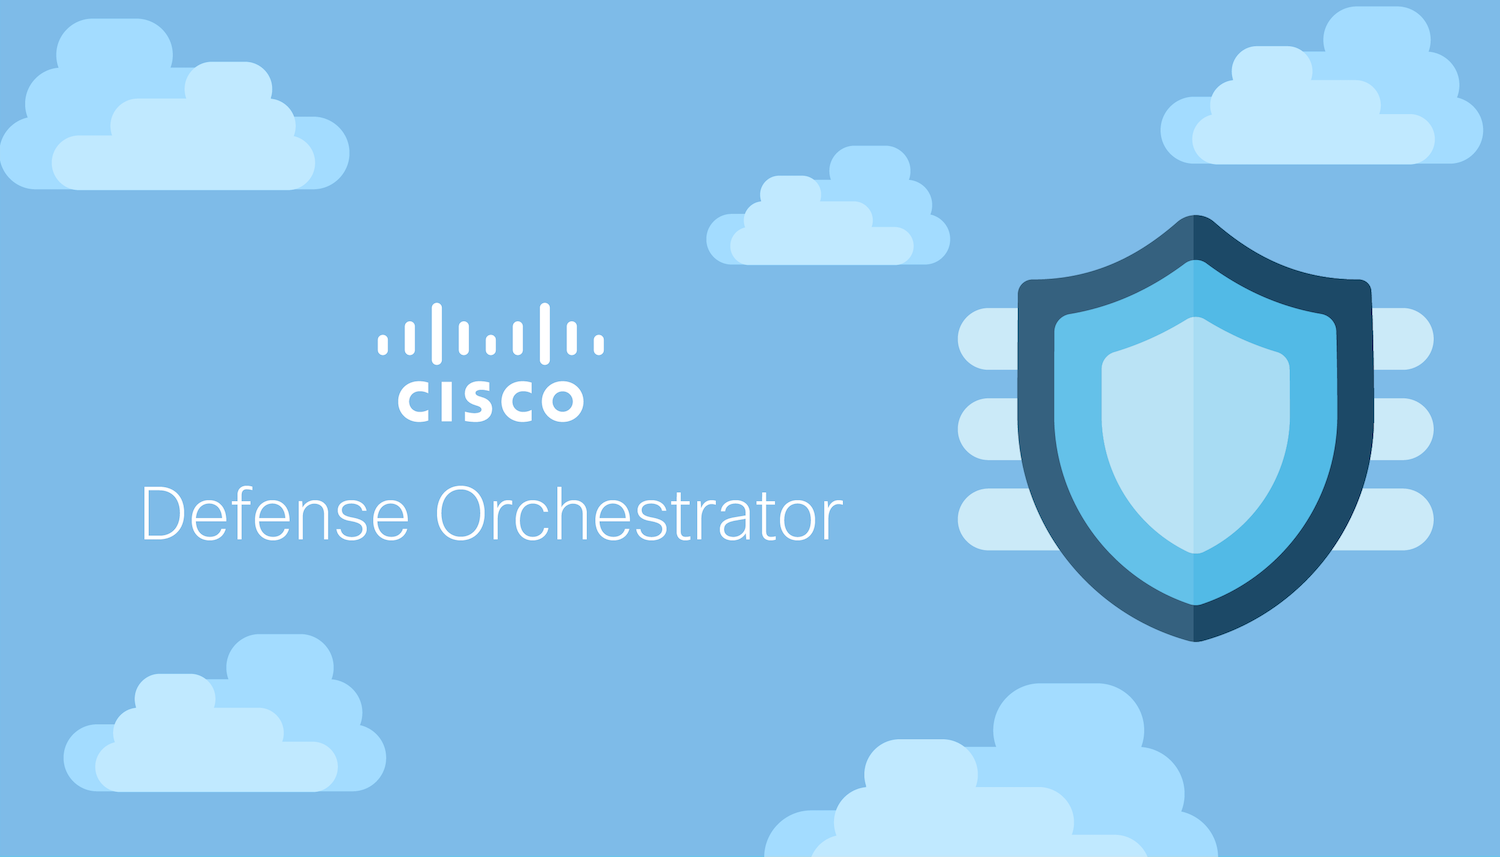 Cisco Defense Orchestrator Learn More